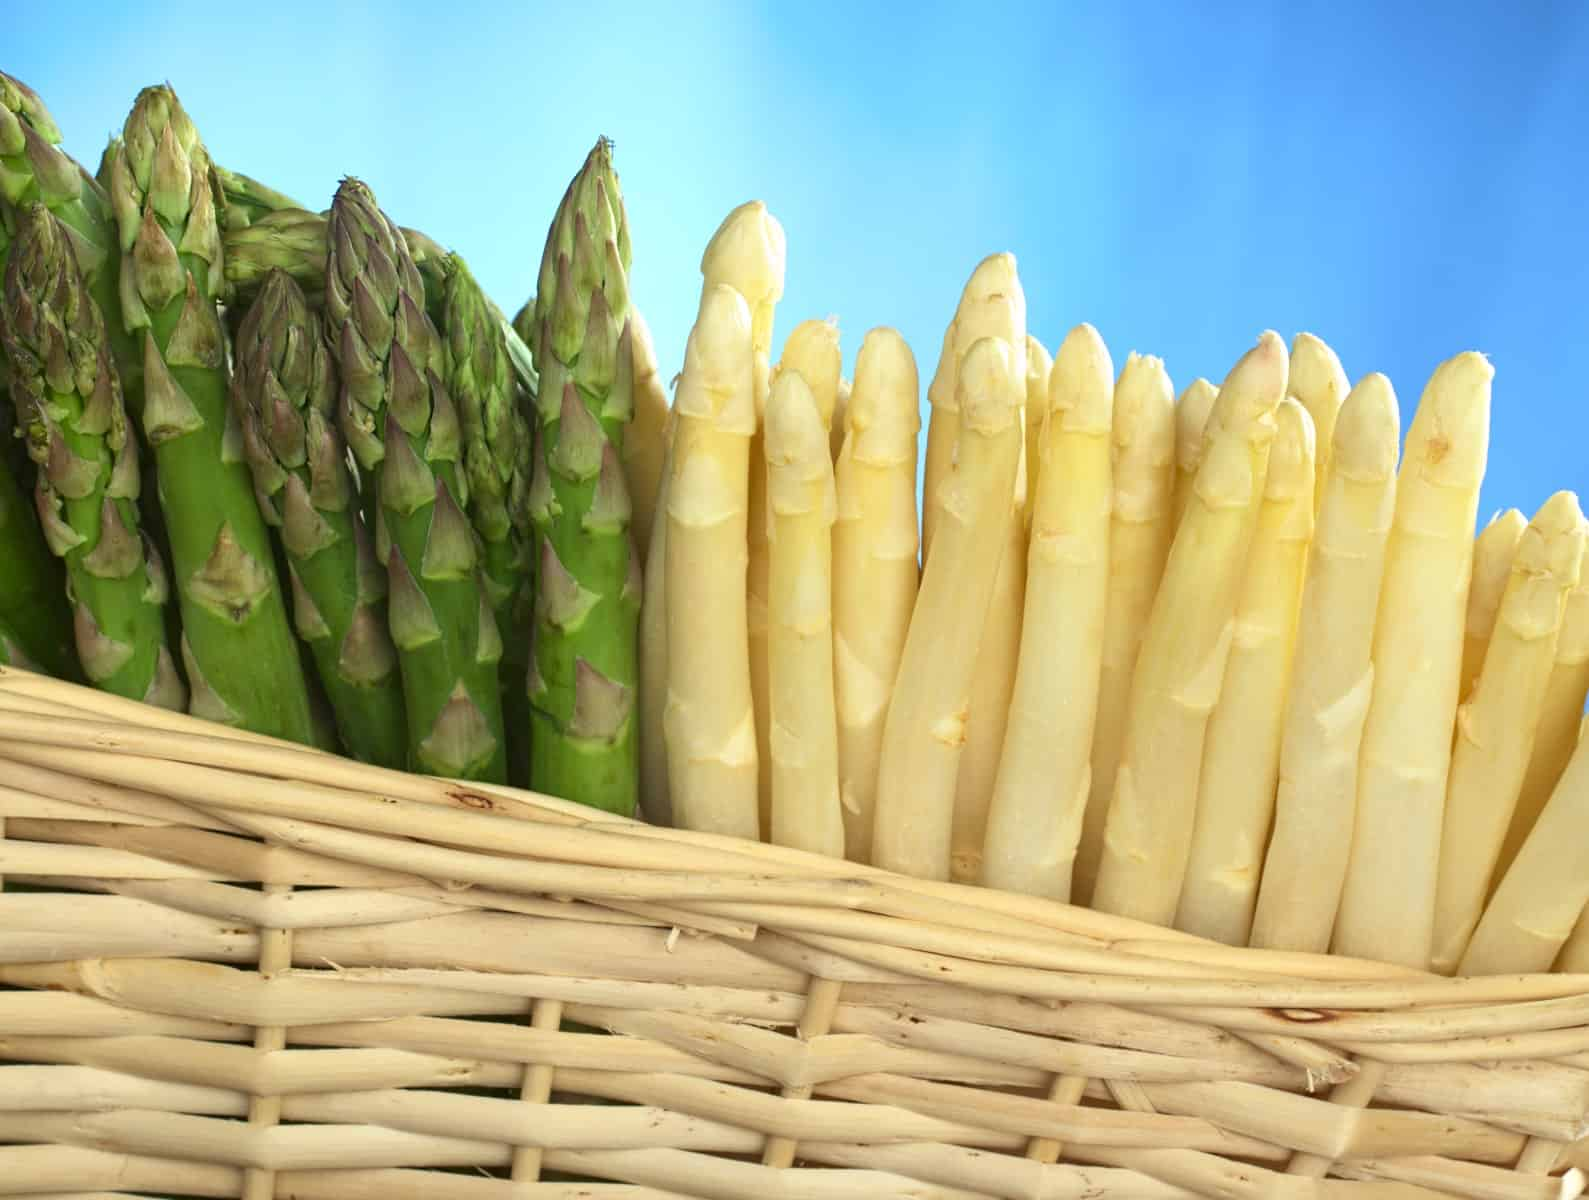 Asparagus in basket, green and white.